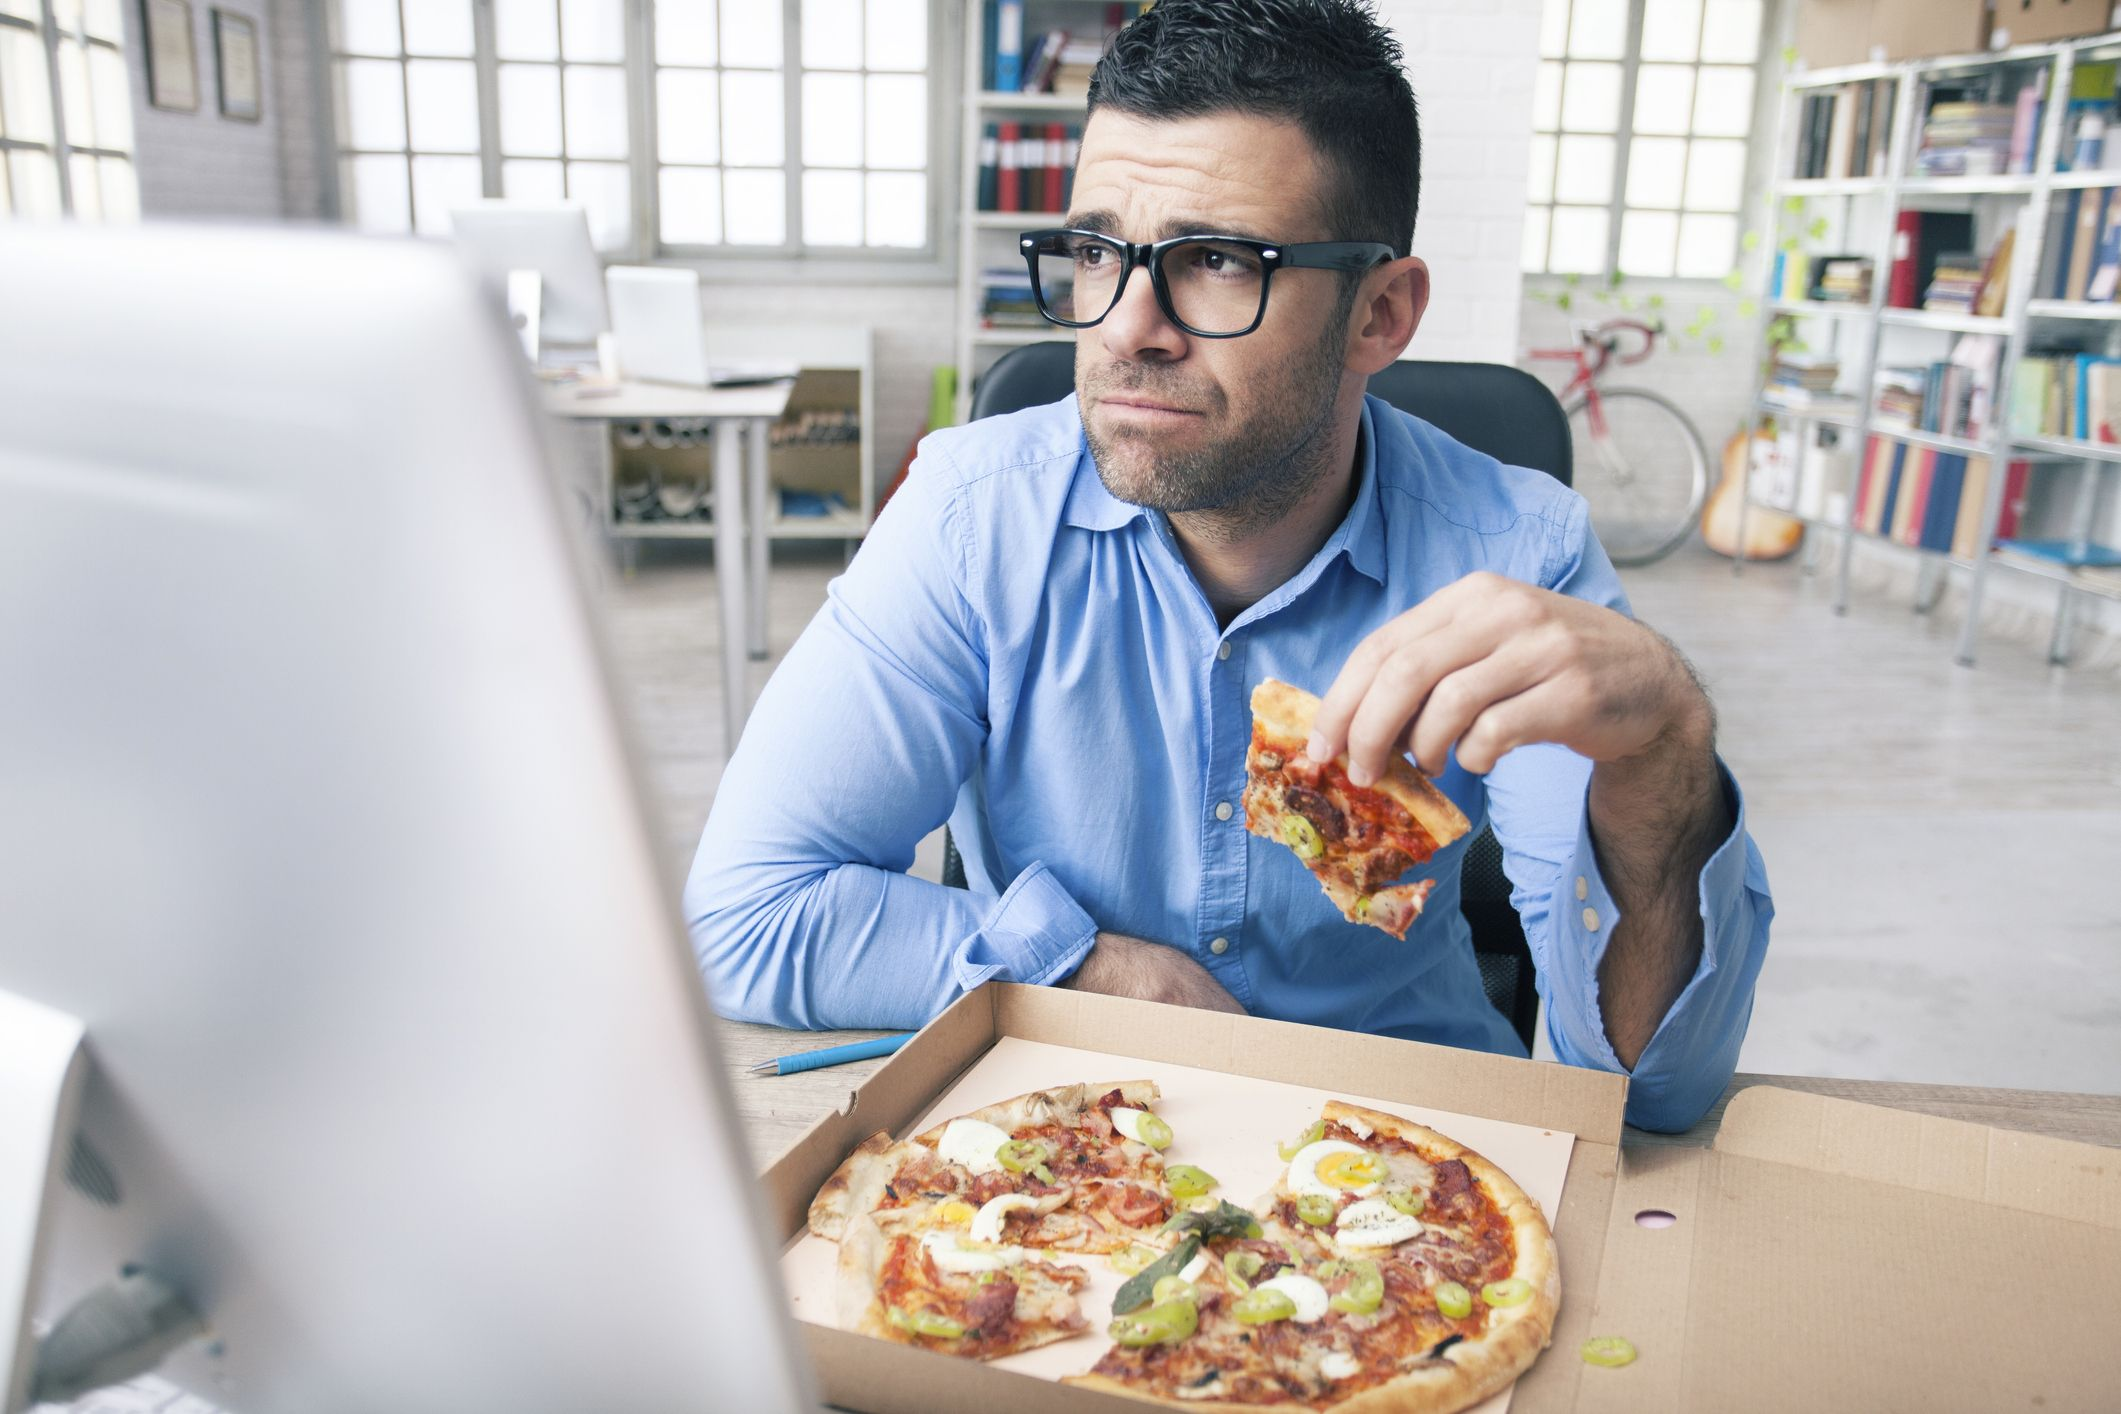 Image result for PIZZa eat fat man